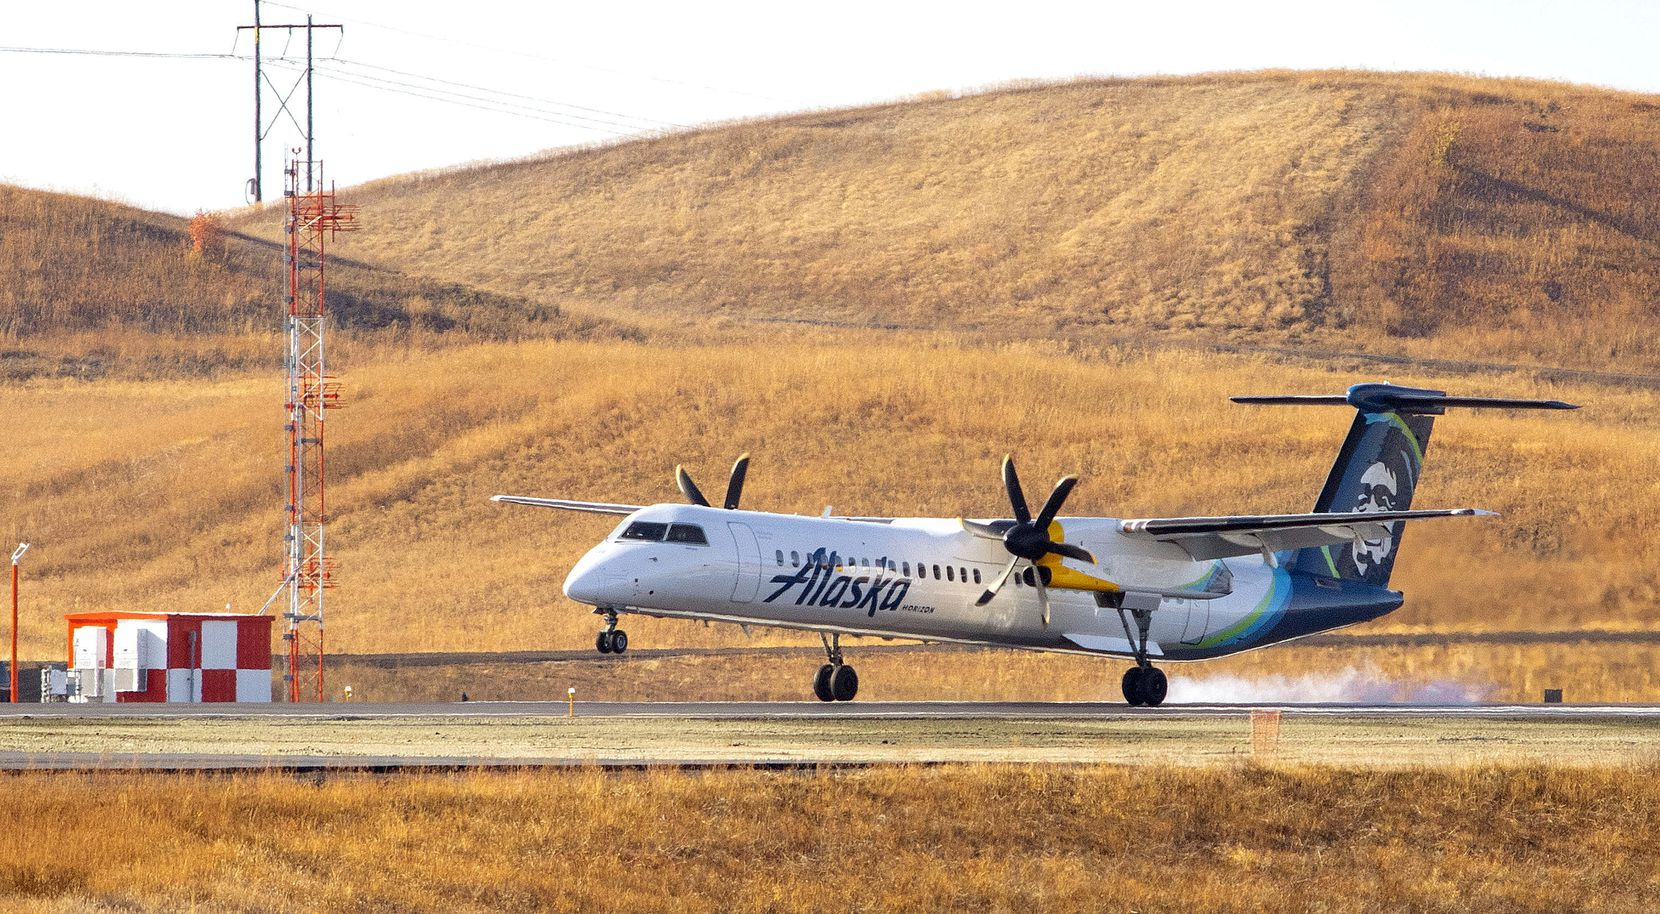 An Alaska Air airplane landed on the new runway before a ribbon-cutting ceremony at the Pullman-Moscow Regional Airport east of Pullman, Wash., in October.